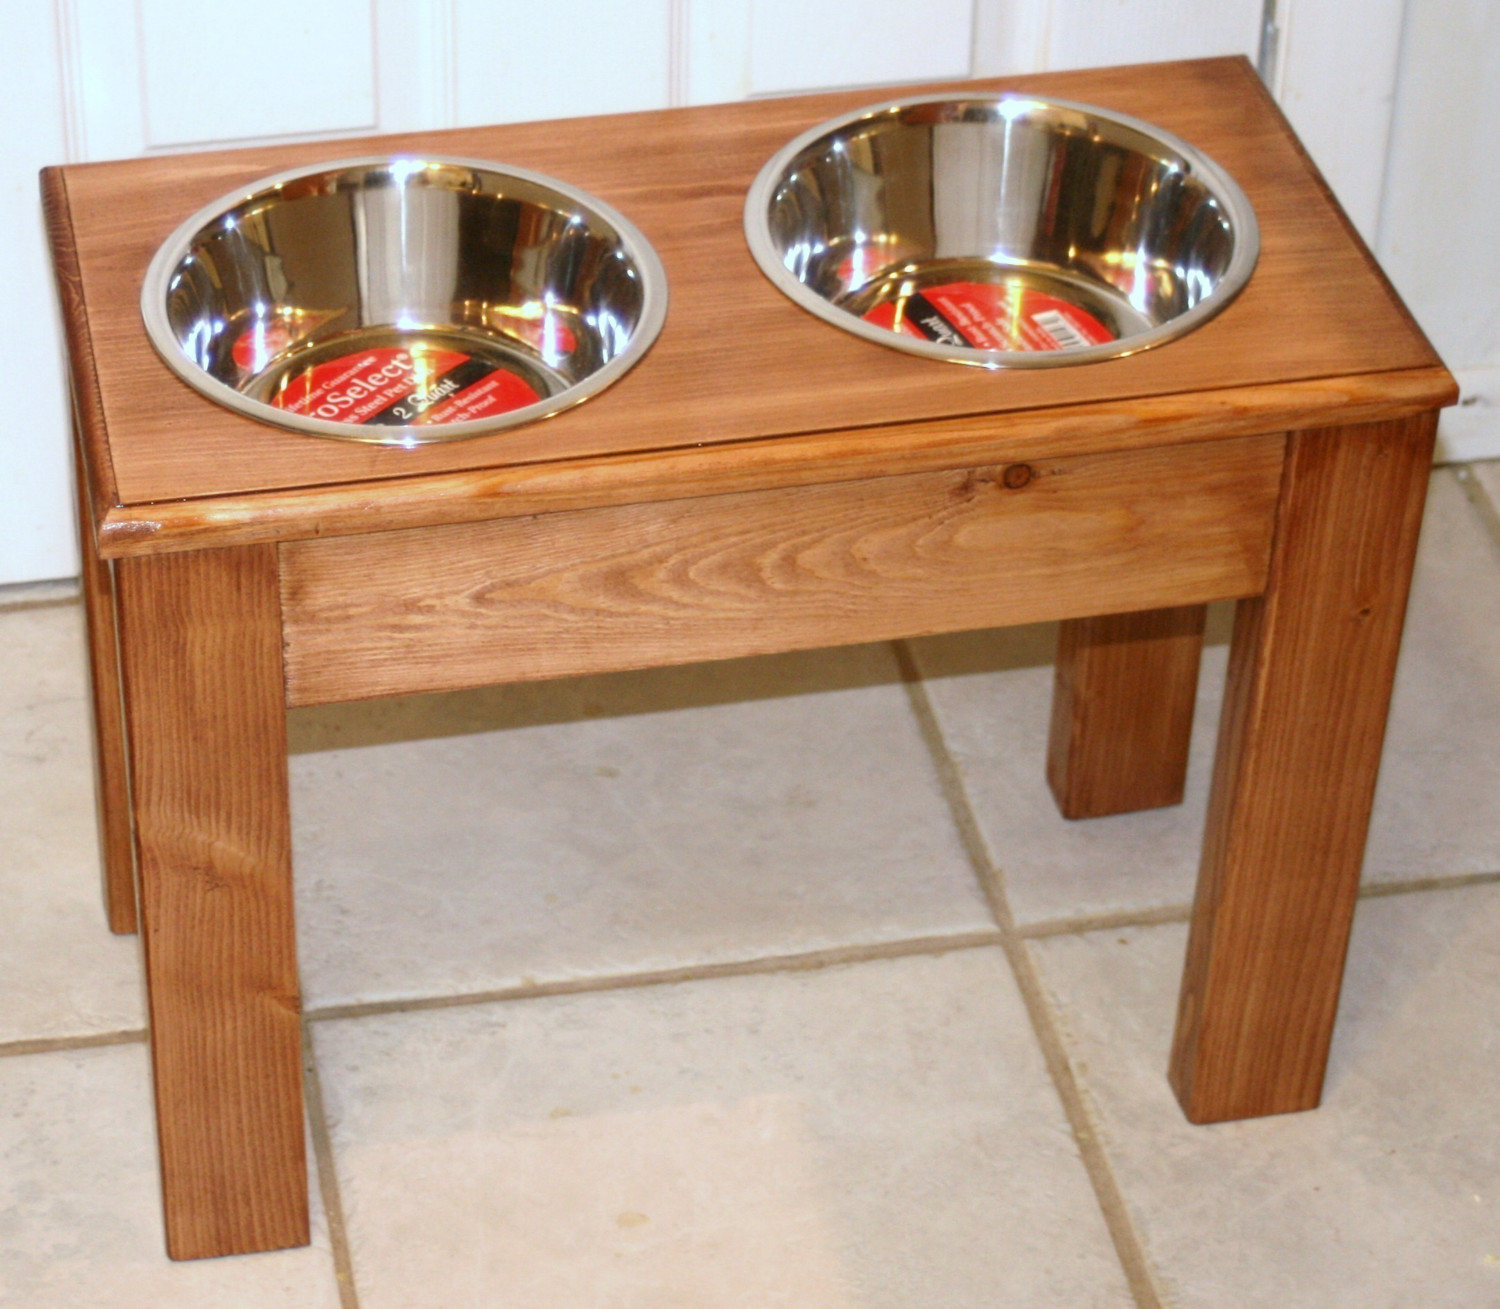 Charming Elevated Dog Bowls for Best Dog Bowl Ideas: Elevated Dog Bowls | Elevated Dog Feeder With Storage | Camo Dog Bowls